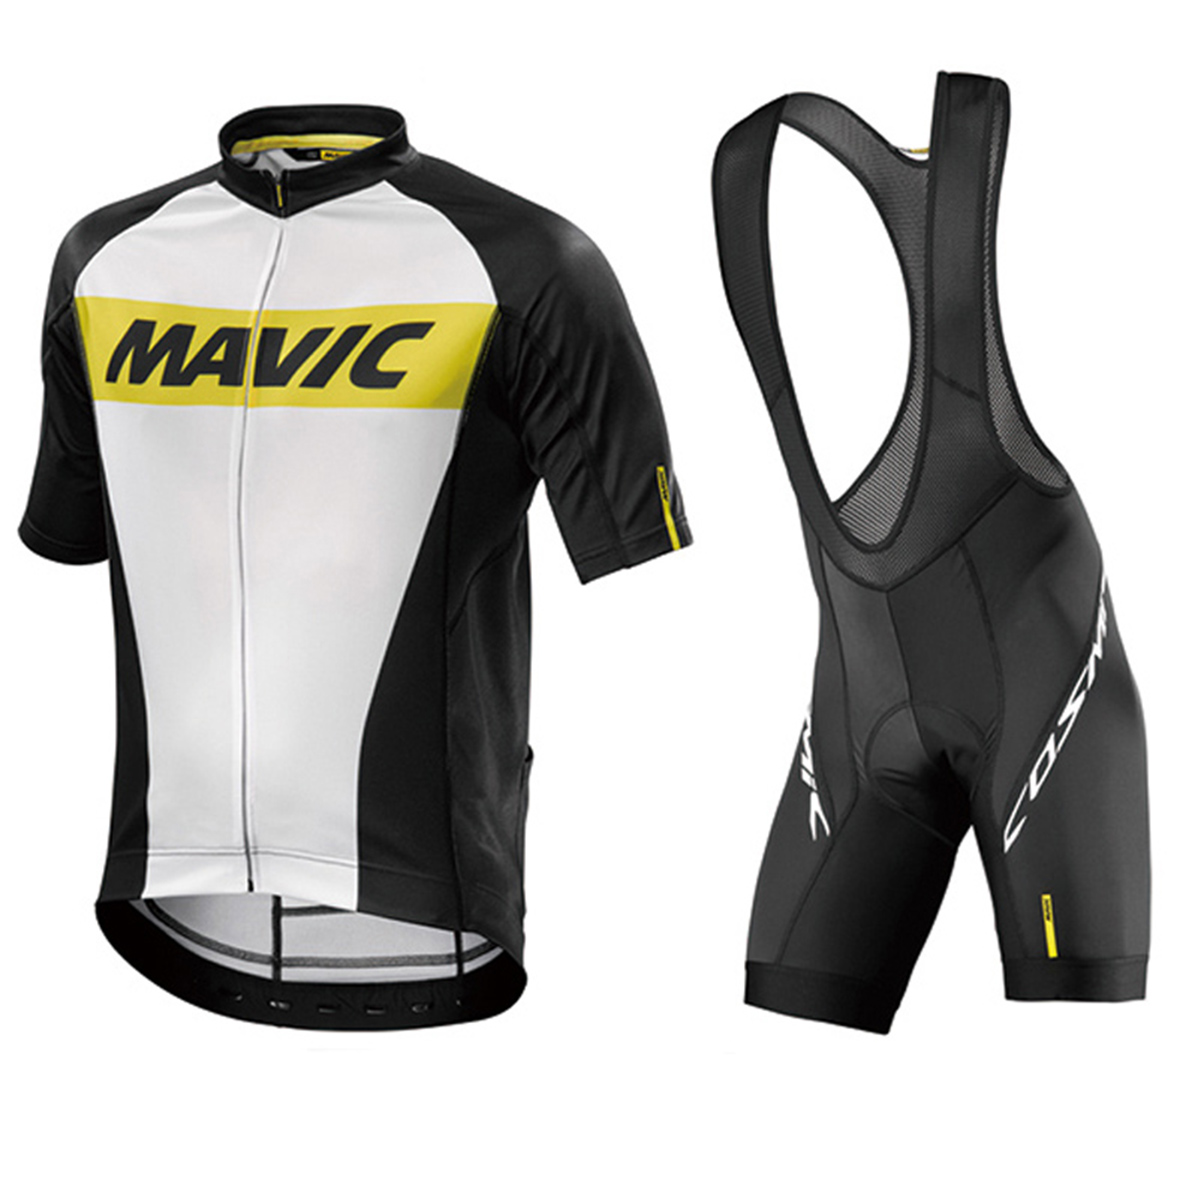 Cycling Jersey Pro Bike Wear Ropa Ciclismo Mavic Bicycle Clothes Summer MTB Clothing Uniforms abbigliamento ciclismo estivo 2018